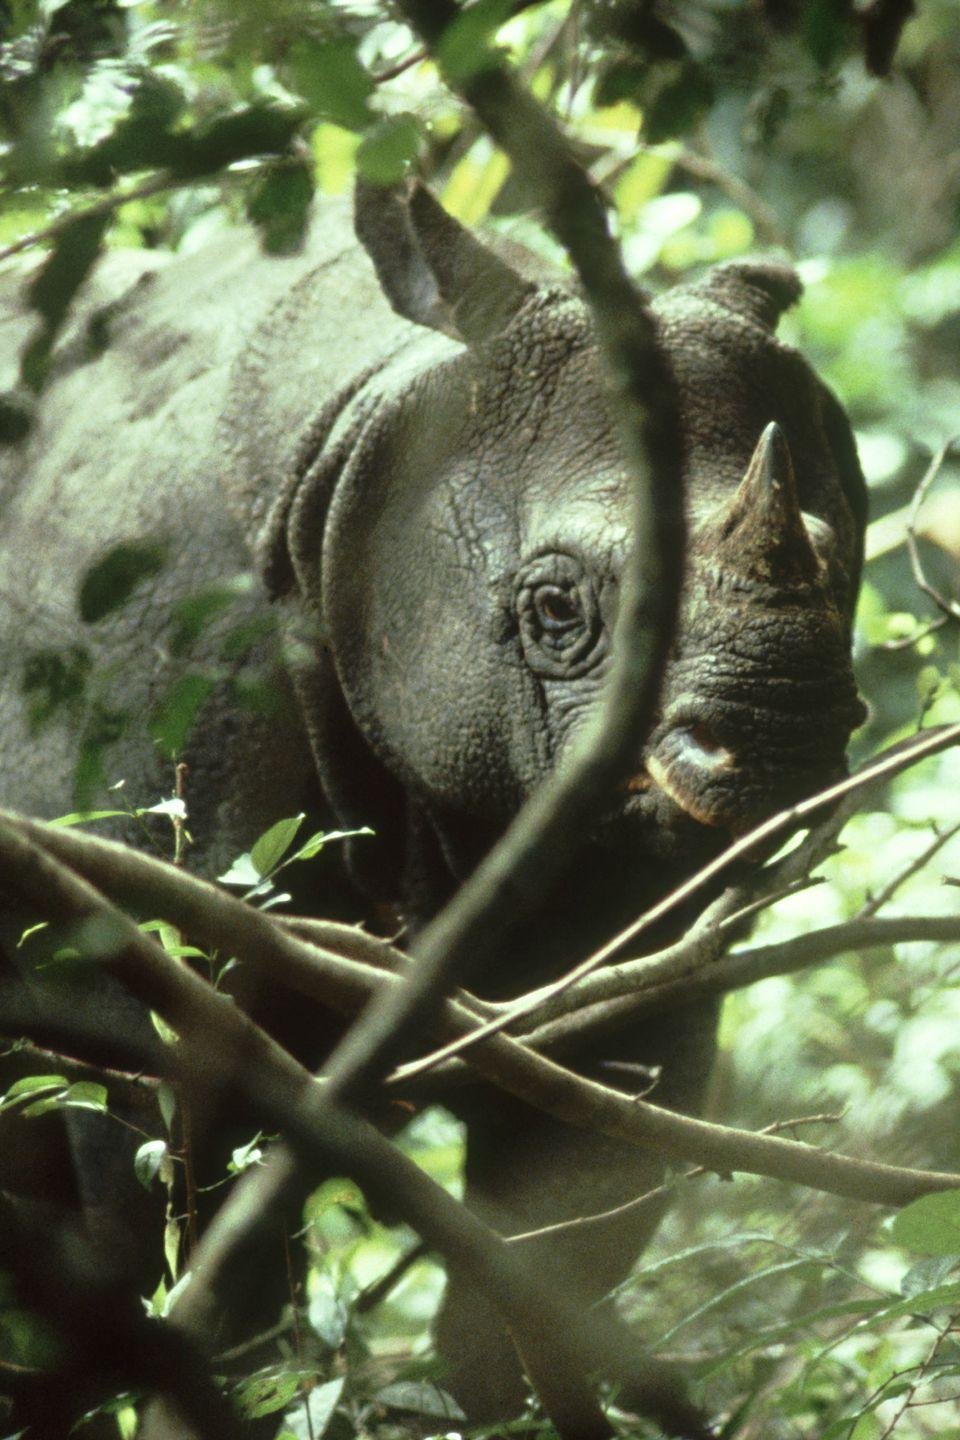 "<p><strong>Scientific classification:</strong> <em>Rhinoceros sondaicus</em></p><p><strong>Location: </strong>Indonesia</p><p>While rhinos are more associated with the African continent, there are Asian species in the rhino family. The Indian rhino could be faring better—it's considered near threatened—but is outright thriving compared to the Javan rhino, confined to the island of Java after hunting and deforestation drove it from the rest of southeast Asia. The Vietnam War also severely drove down the population of the rhino as its habitat was destroyed. </p><p>Today, <a href=""https://www.worldwildlife.org/species/javan-rhino"" rel=""nofollow noopener"" target=""_blank"" data-ylk=""slk:only 60 Javan rhinos survive"" class=""link rapid-noclick-resp"">only 60 Javan rhinos survive</a> in a wildlife preserve at the very western tip of Java. Disease and inbreeding may still drive this small population to extinction, despite extensive efforts to save it. A few remaining populations off of Java have been spotted over the years, but they are few and far between and one of these populations was driven to extinction in Vietnam in 2010, leading to few options to introduce new rhinos to the breeding stock. (The Javan rhino is not closely related to the five other rhino species, save for the Indian rhino.)<br></p>"